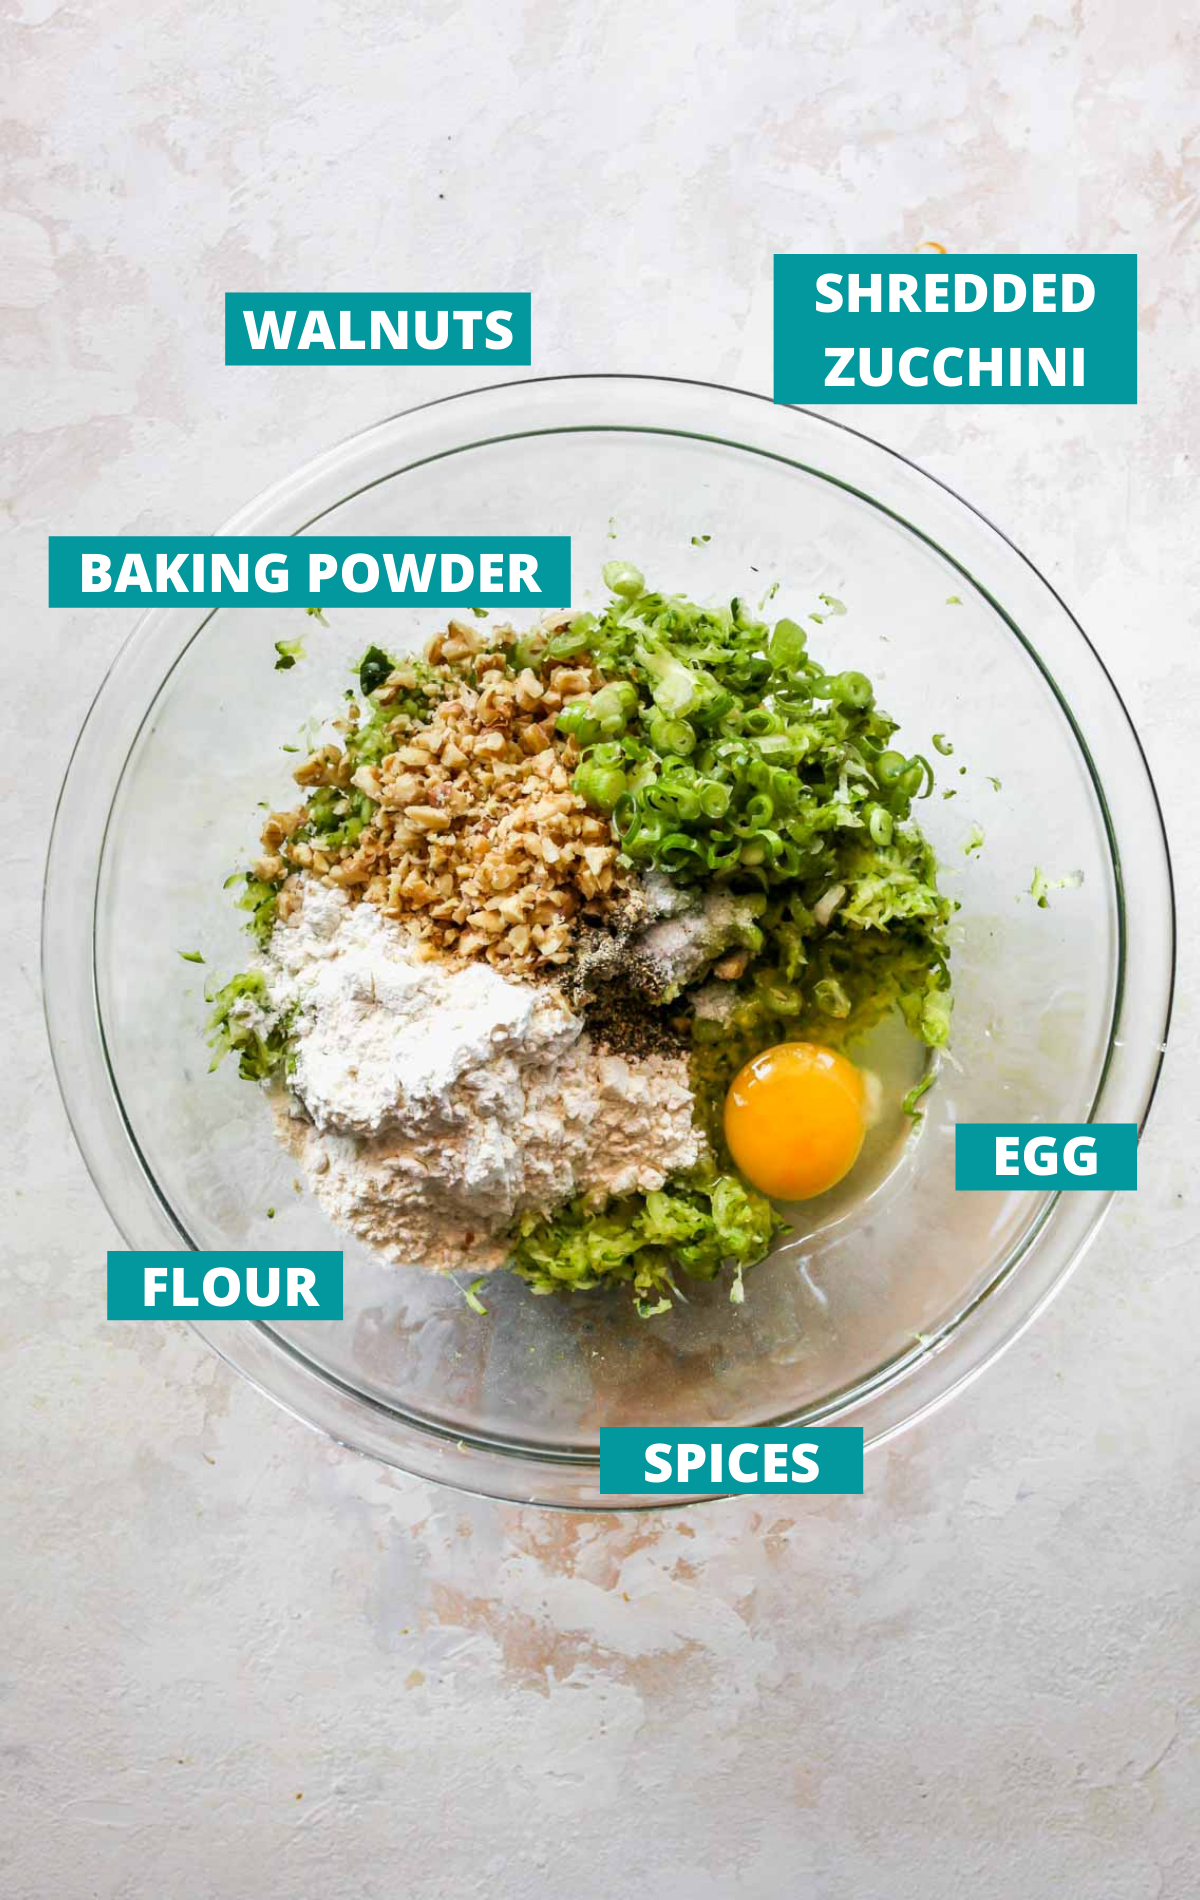 Fritter ingredients displayed in a bowl with blue labels